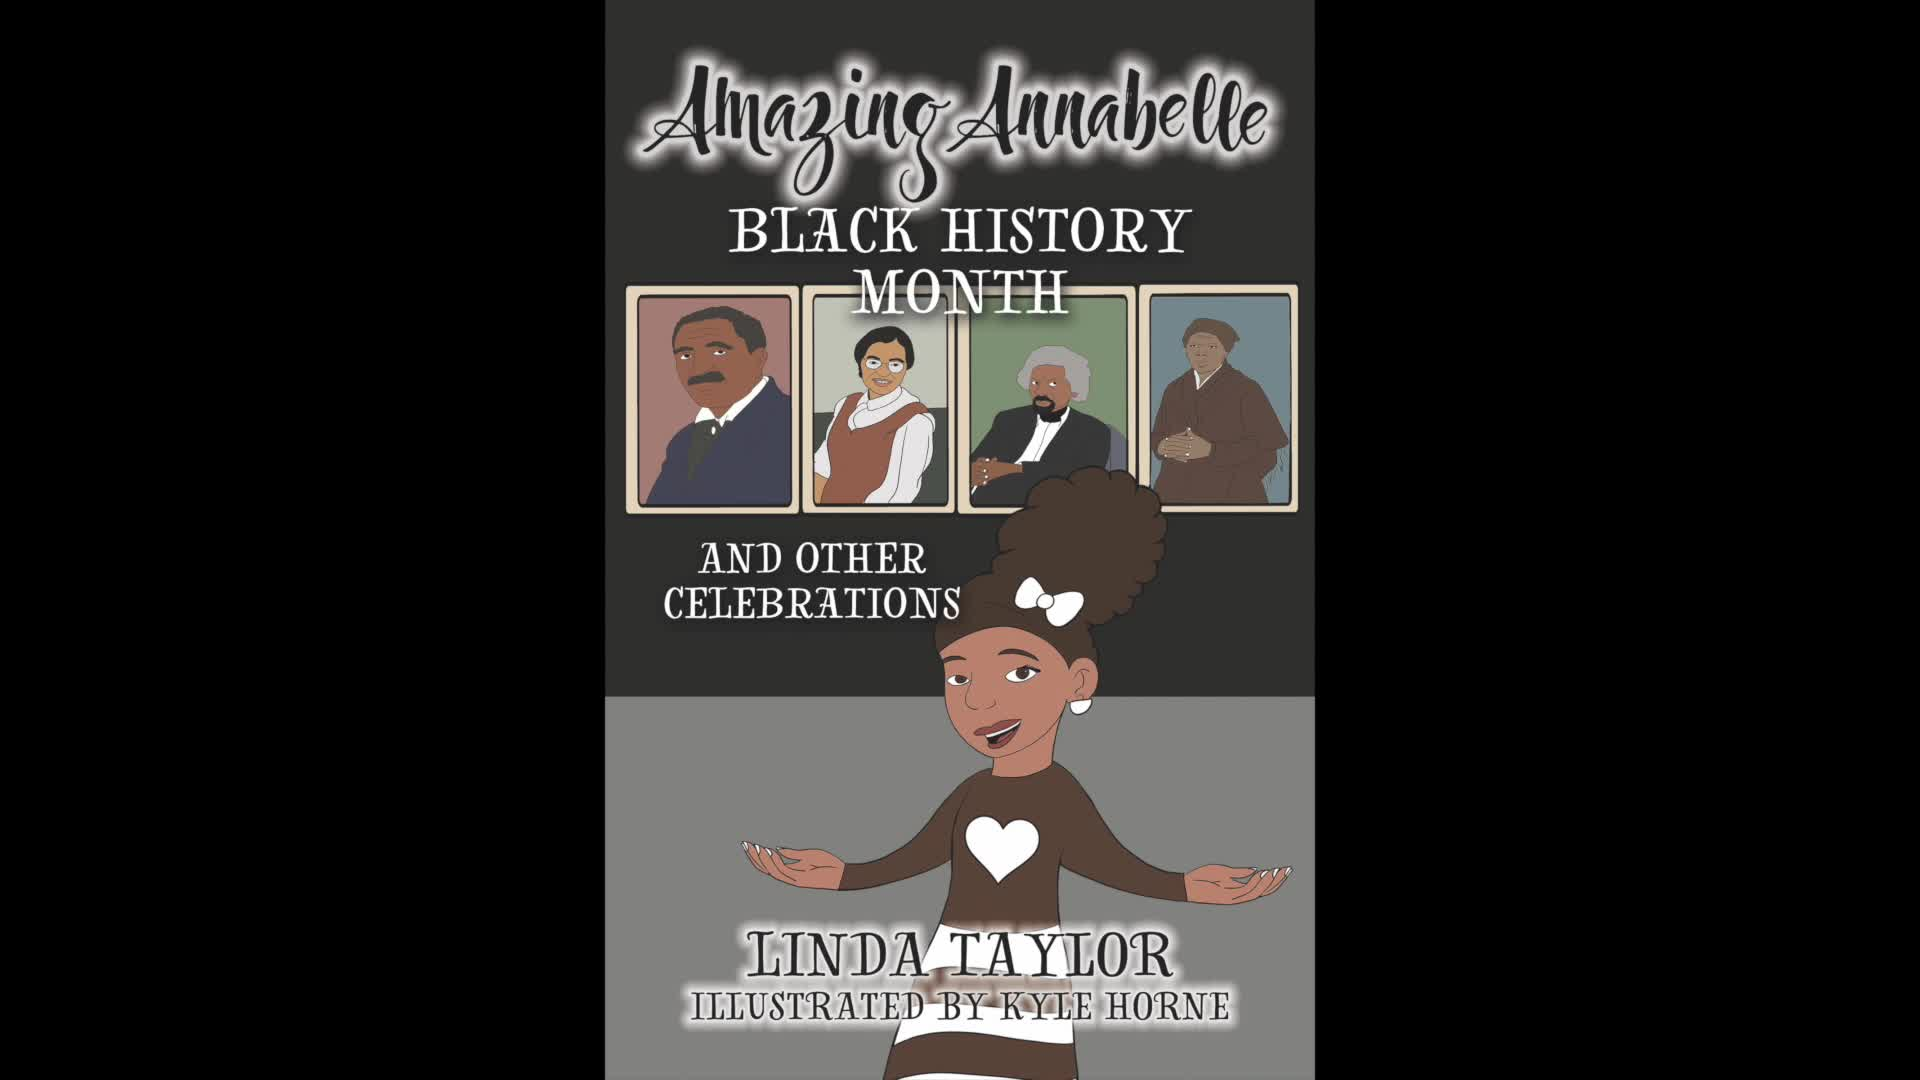 Amazing Annabelle Black History Month Chapter 9